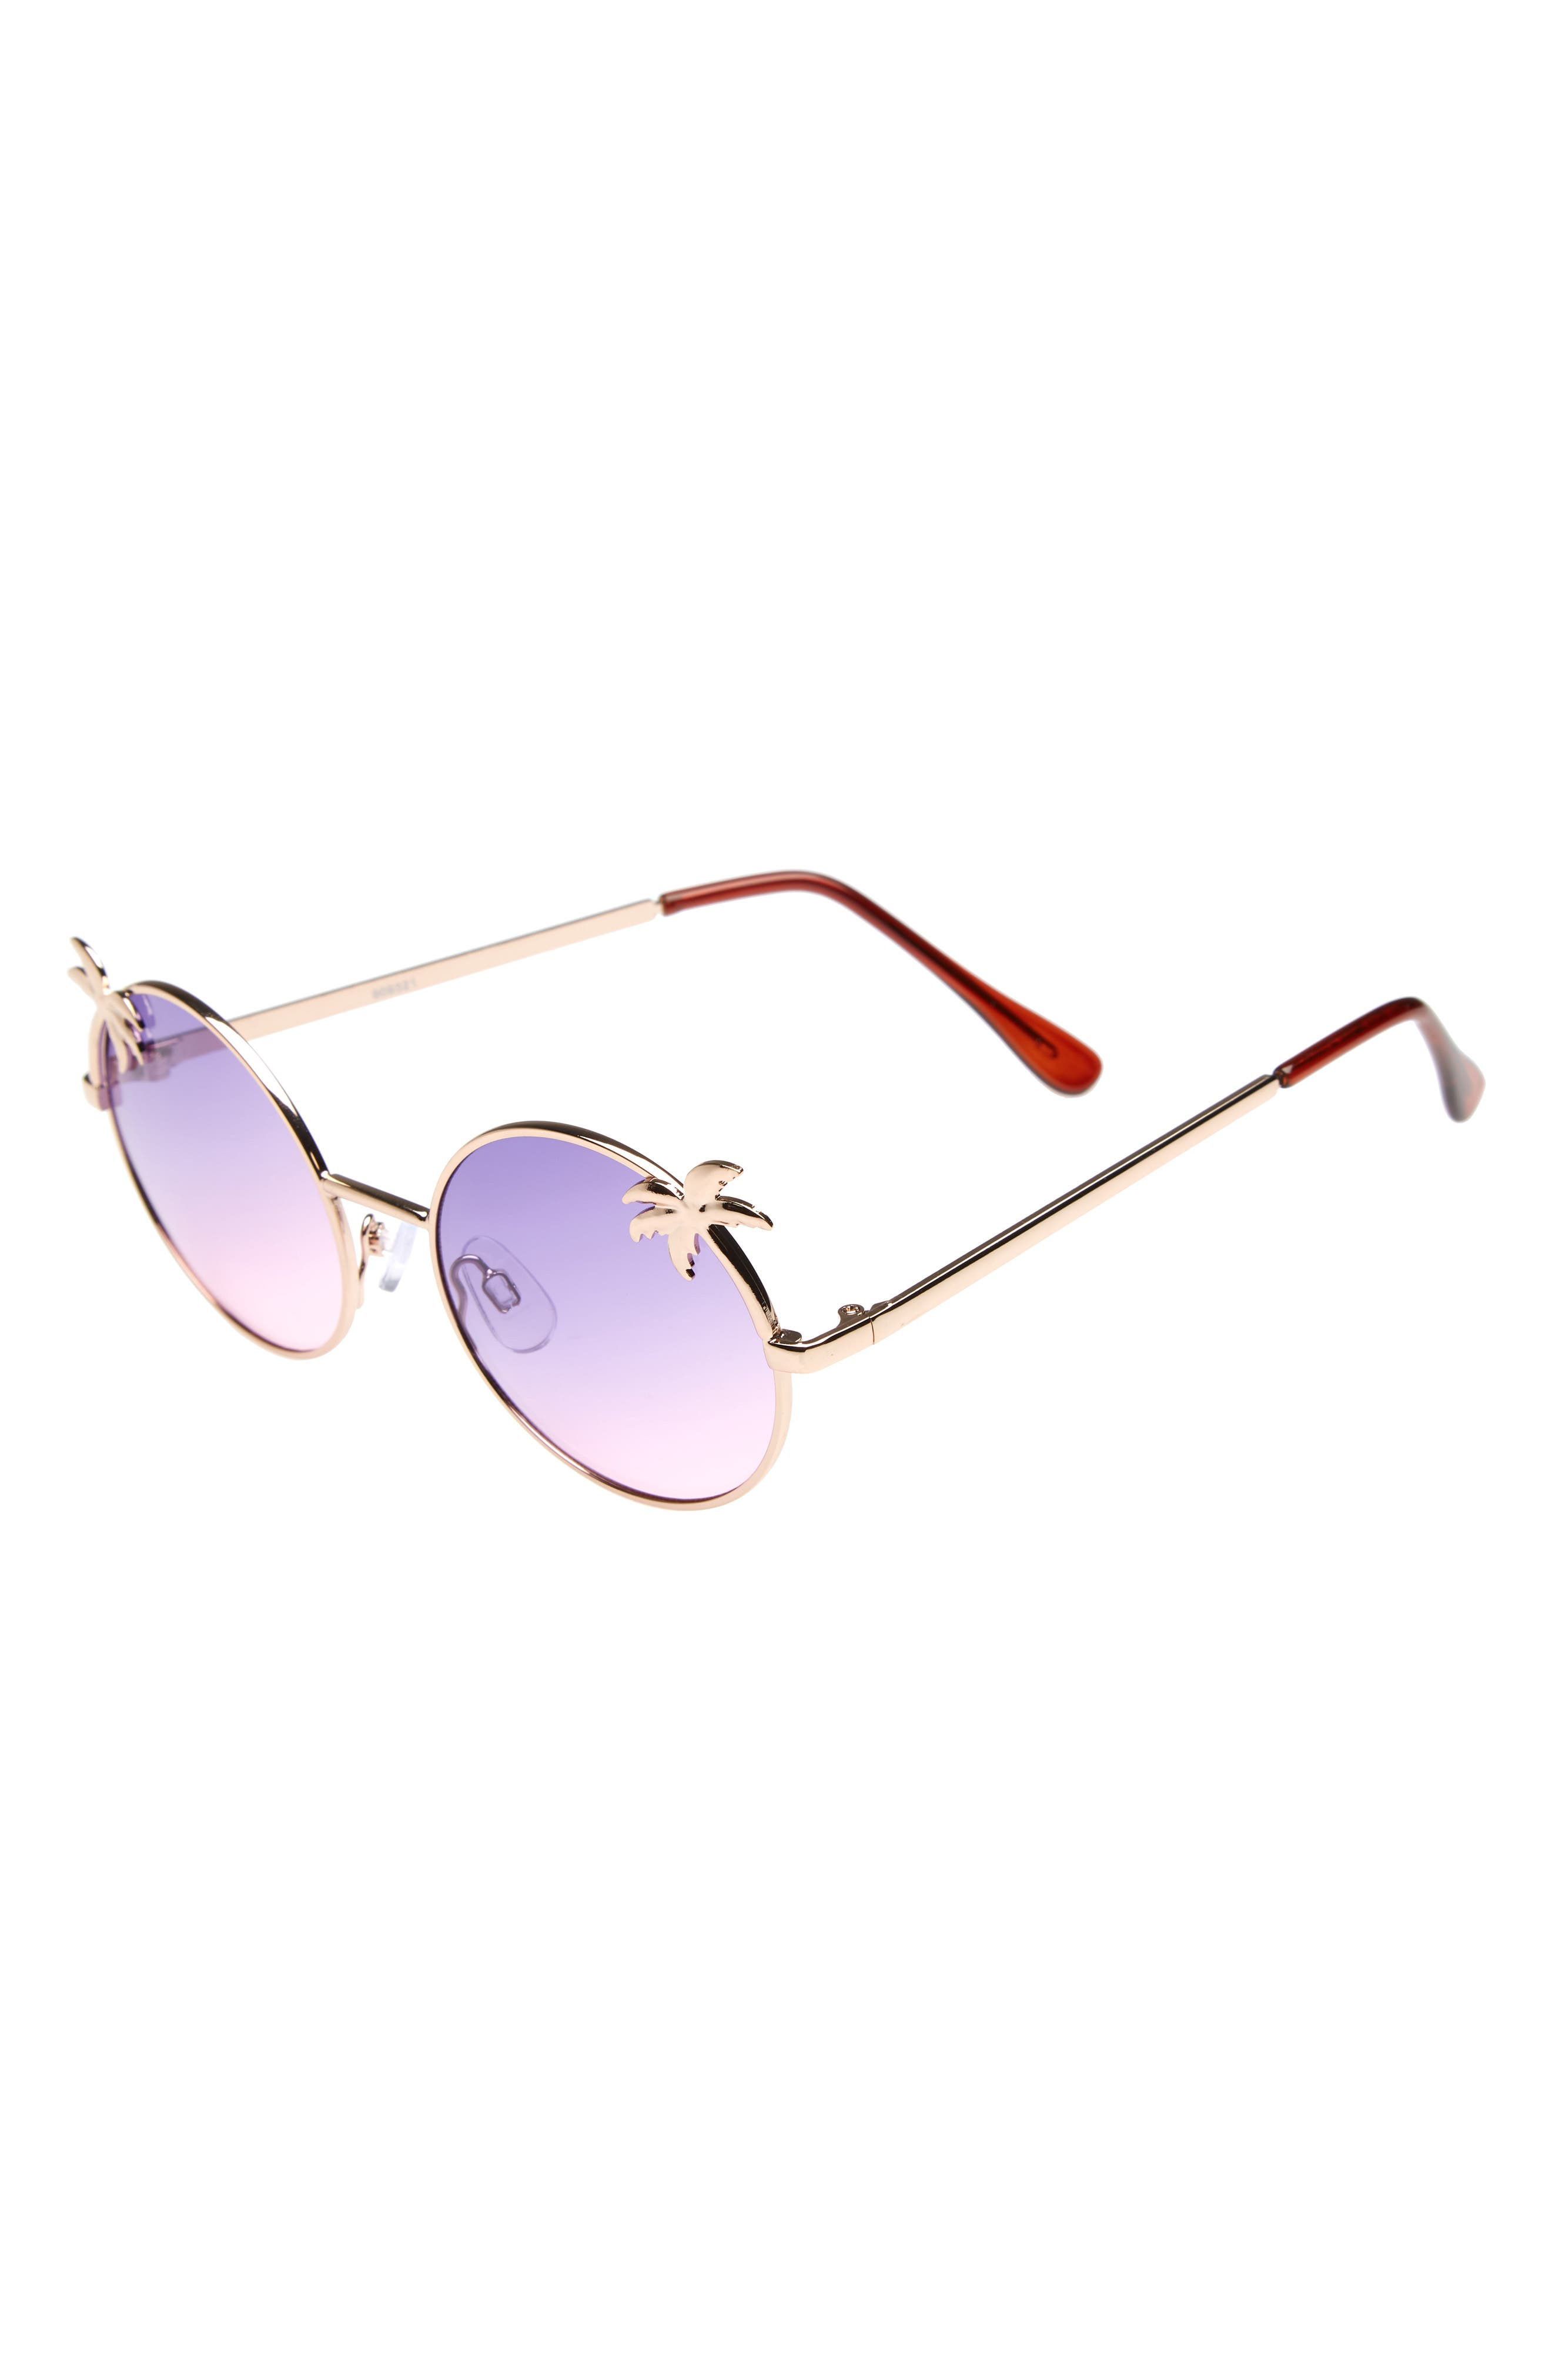 Palm Tree Sunglasses,                             Main thumbnail 1, color,                             500